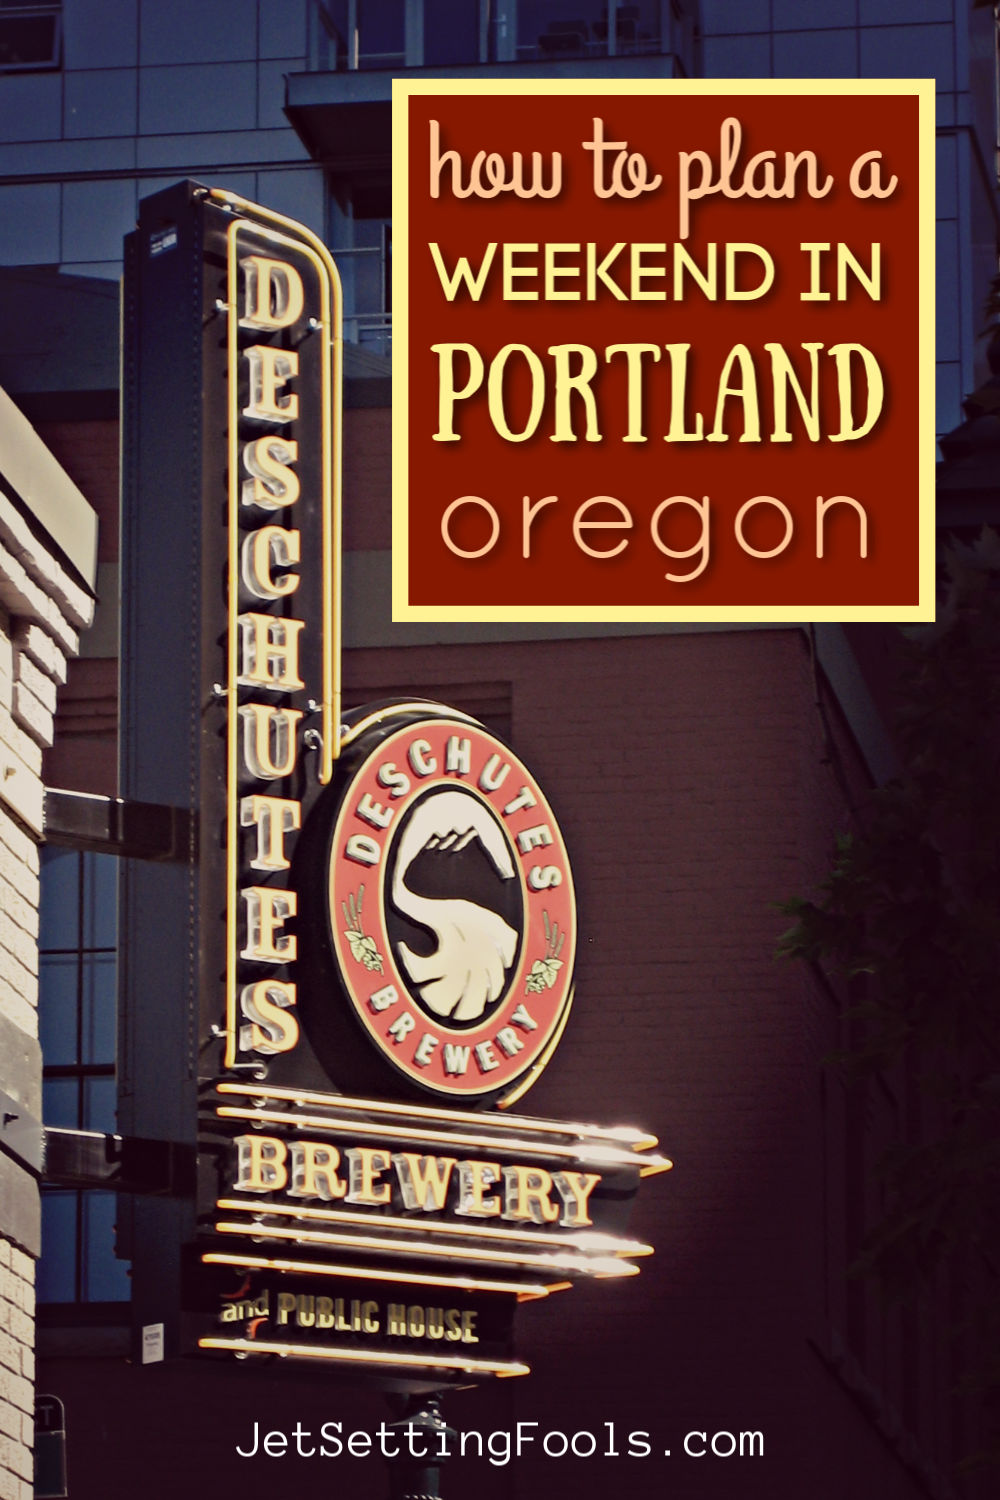 How To Plan a Weekend in Portland Oregon by JetSettingFools.com